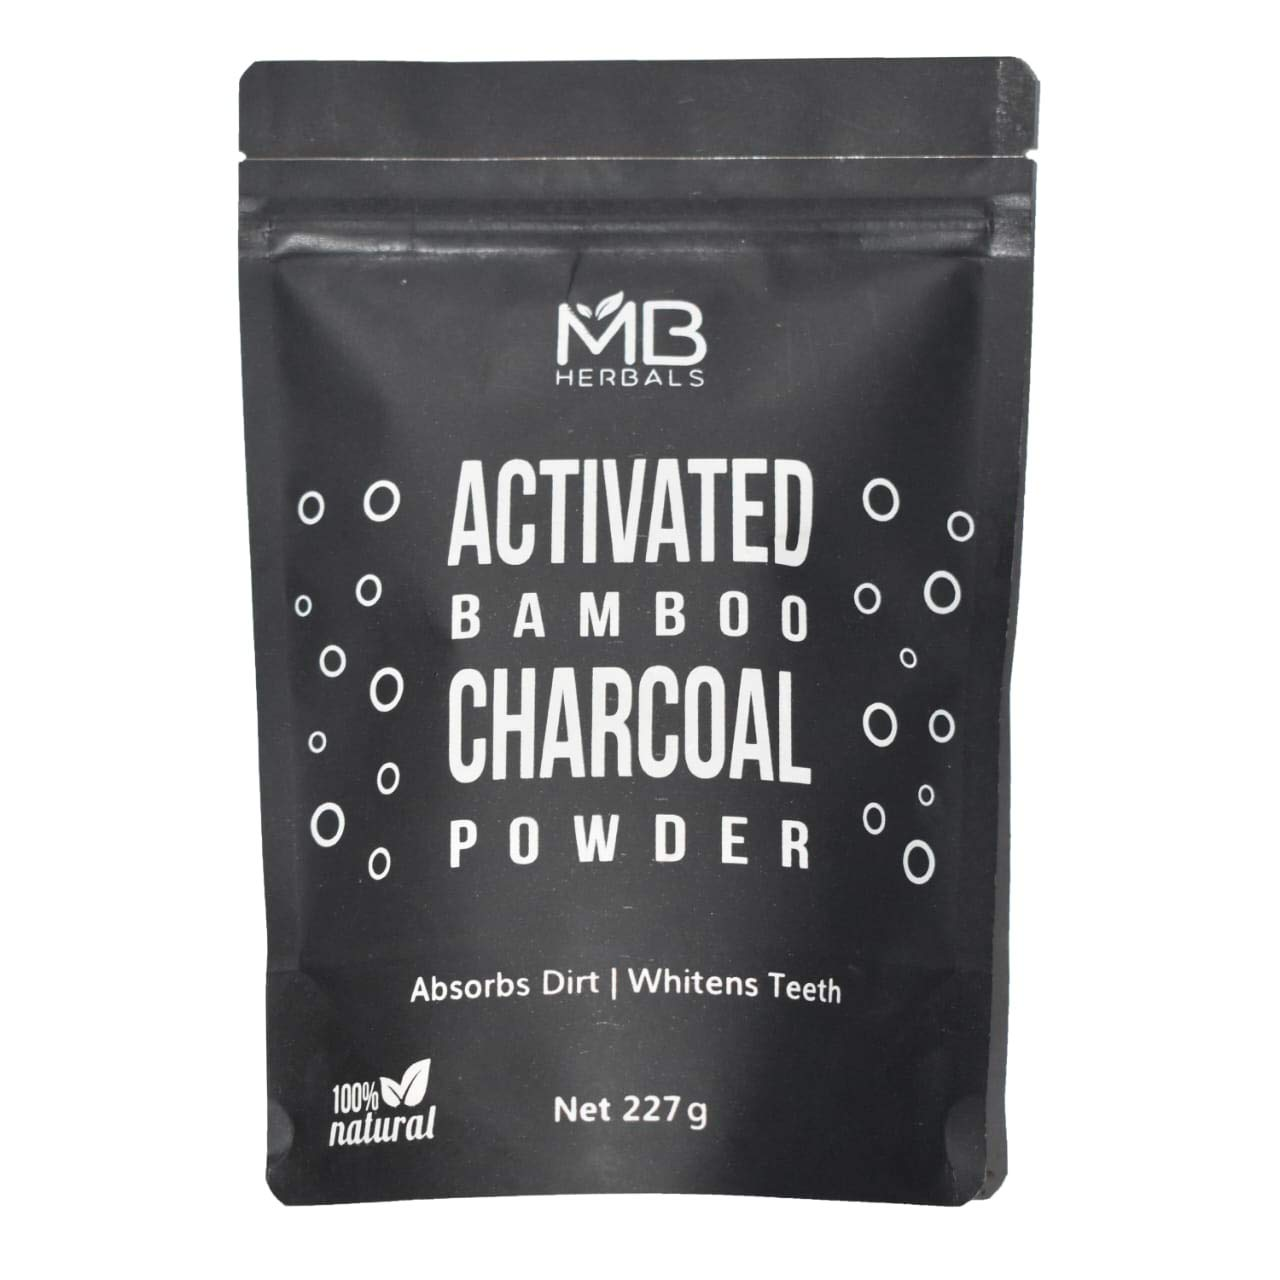 MB Herbals Activated Bamboo Charcoal Powder 227g | 8 oz | Deep Cleanses & Detoxifies Skin & Hair | Whitens Teeth | Food Grade